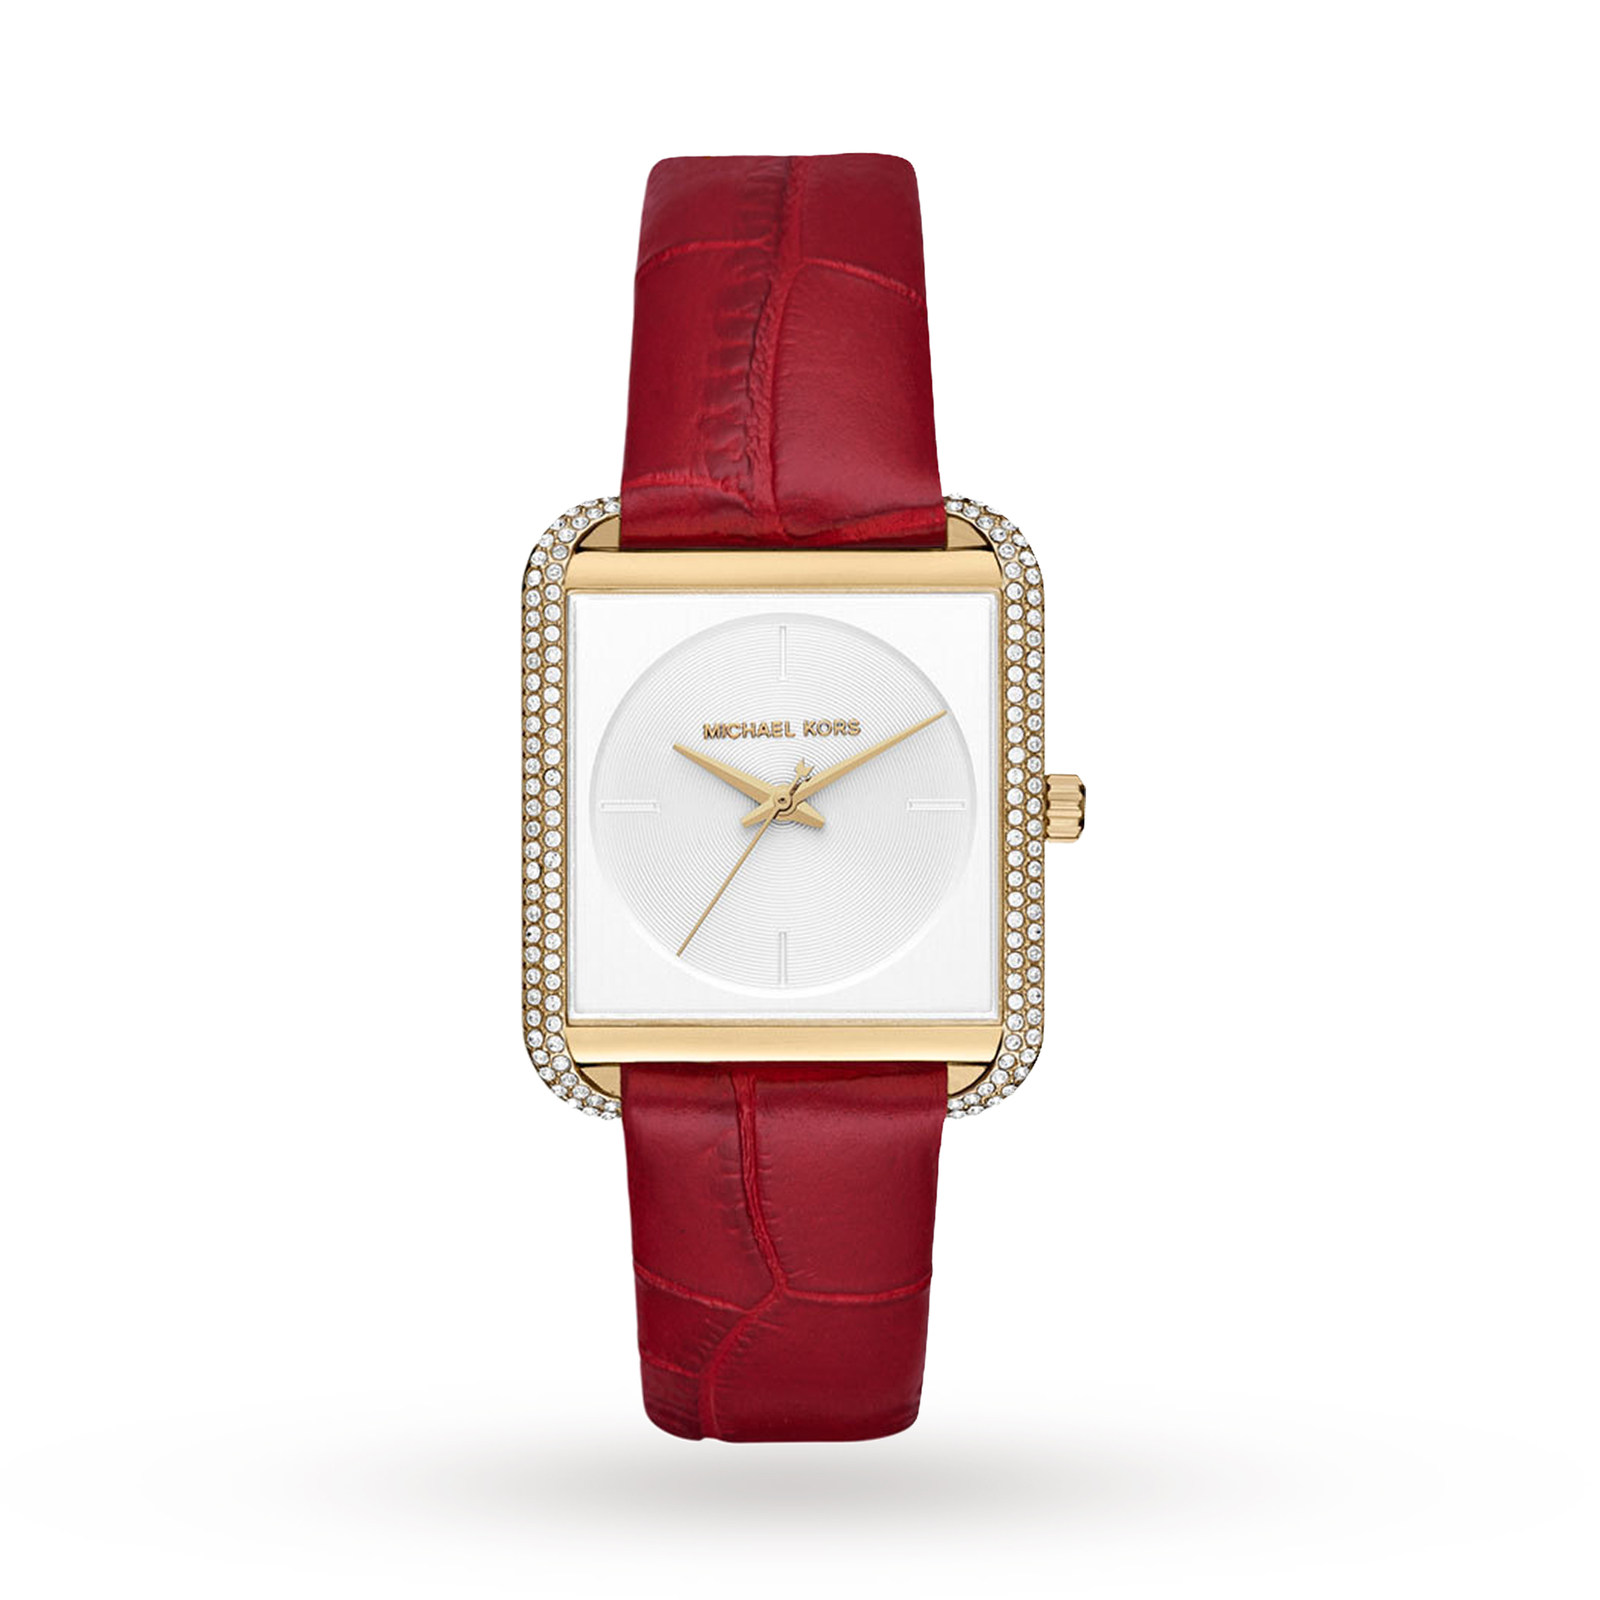 143874e70216 Buy cheap Kors watch - compare Women s Watches prices for best UK deals